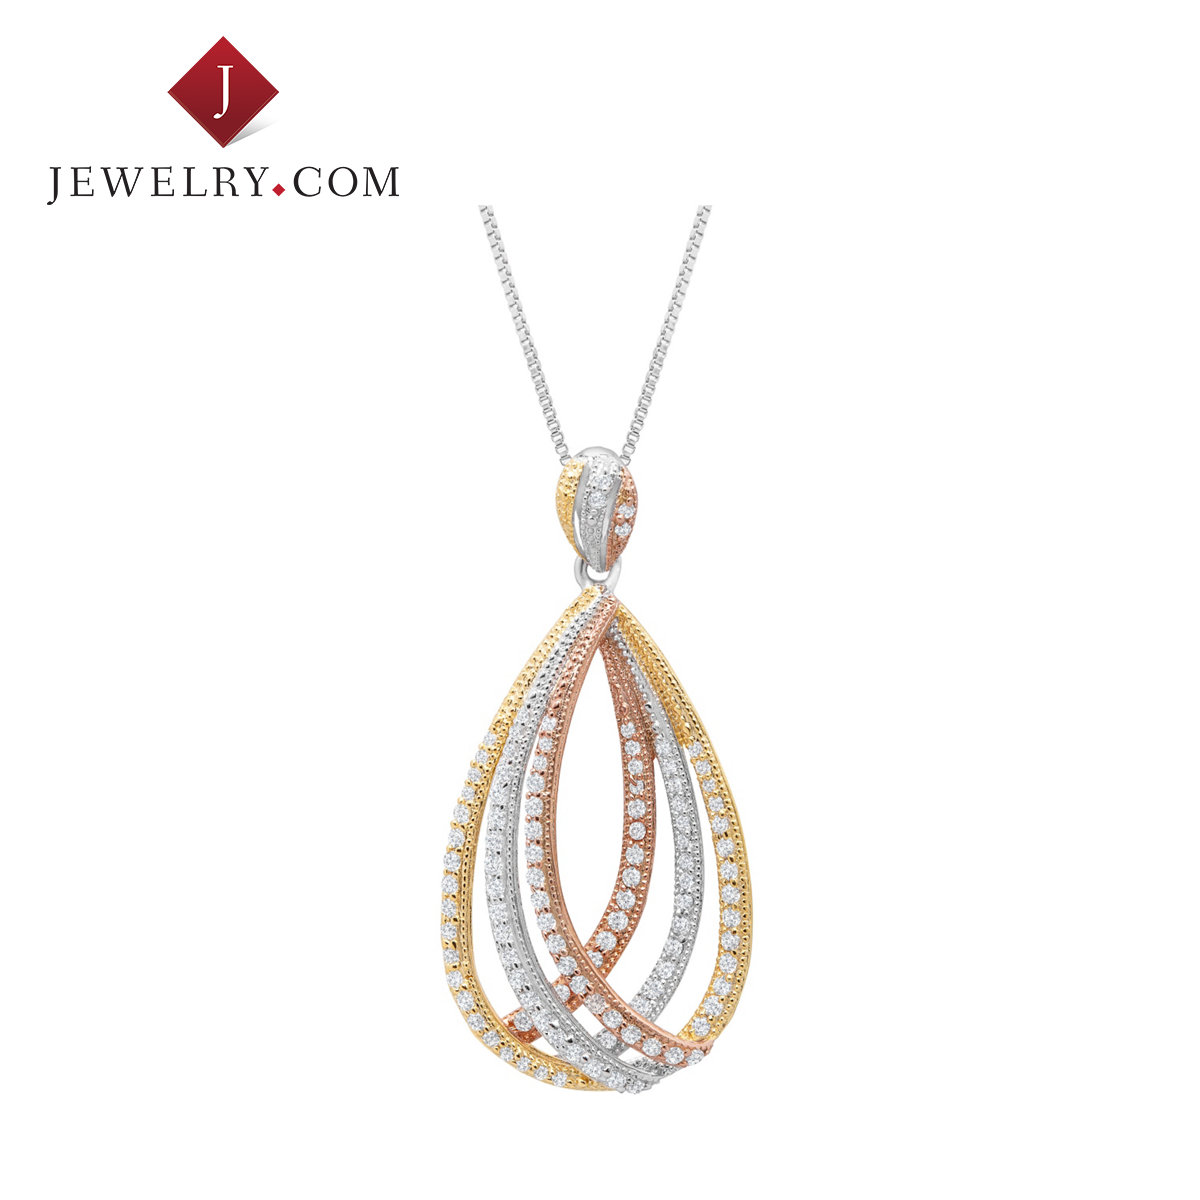 Jewelry.com official a-al2o3 silver plated three color 925 k gold inlaid zircon pendant necklace with jewelry in europe and america